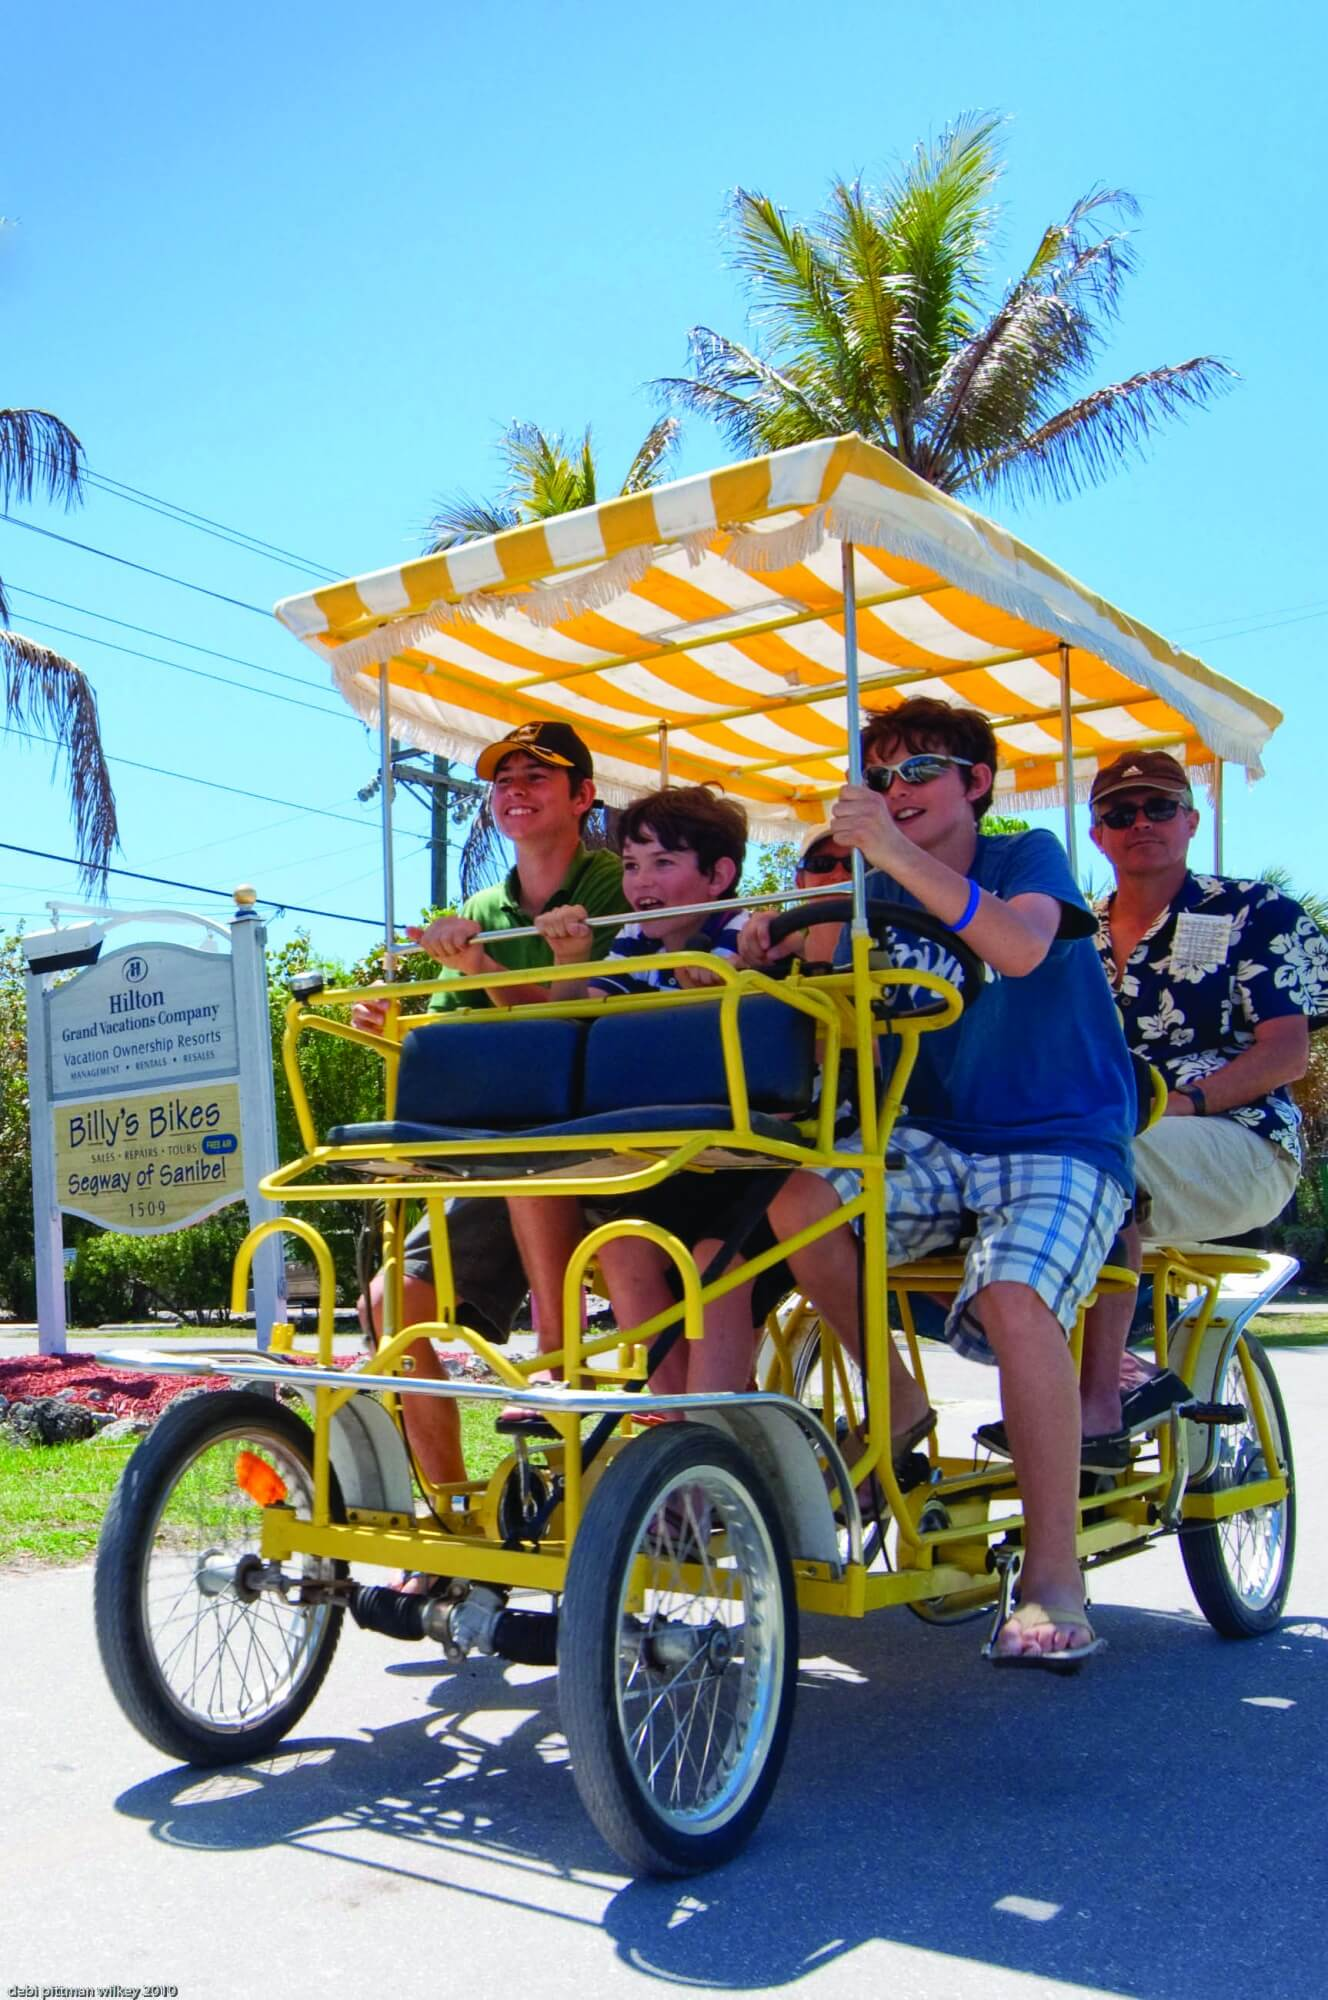 MustDo.com | Biking along Periwinkle Way on Sanibel Island, Florida. Photo by Debi Pittman Wilkey